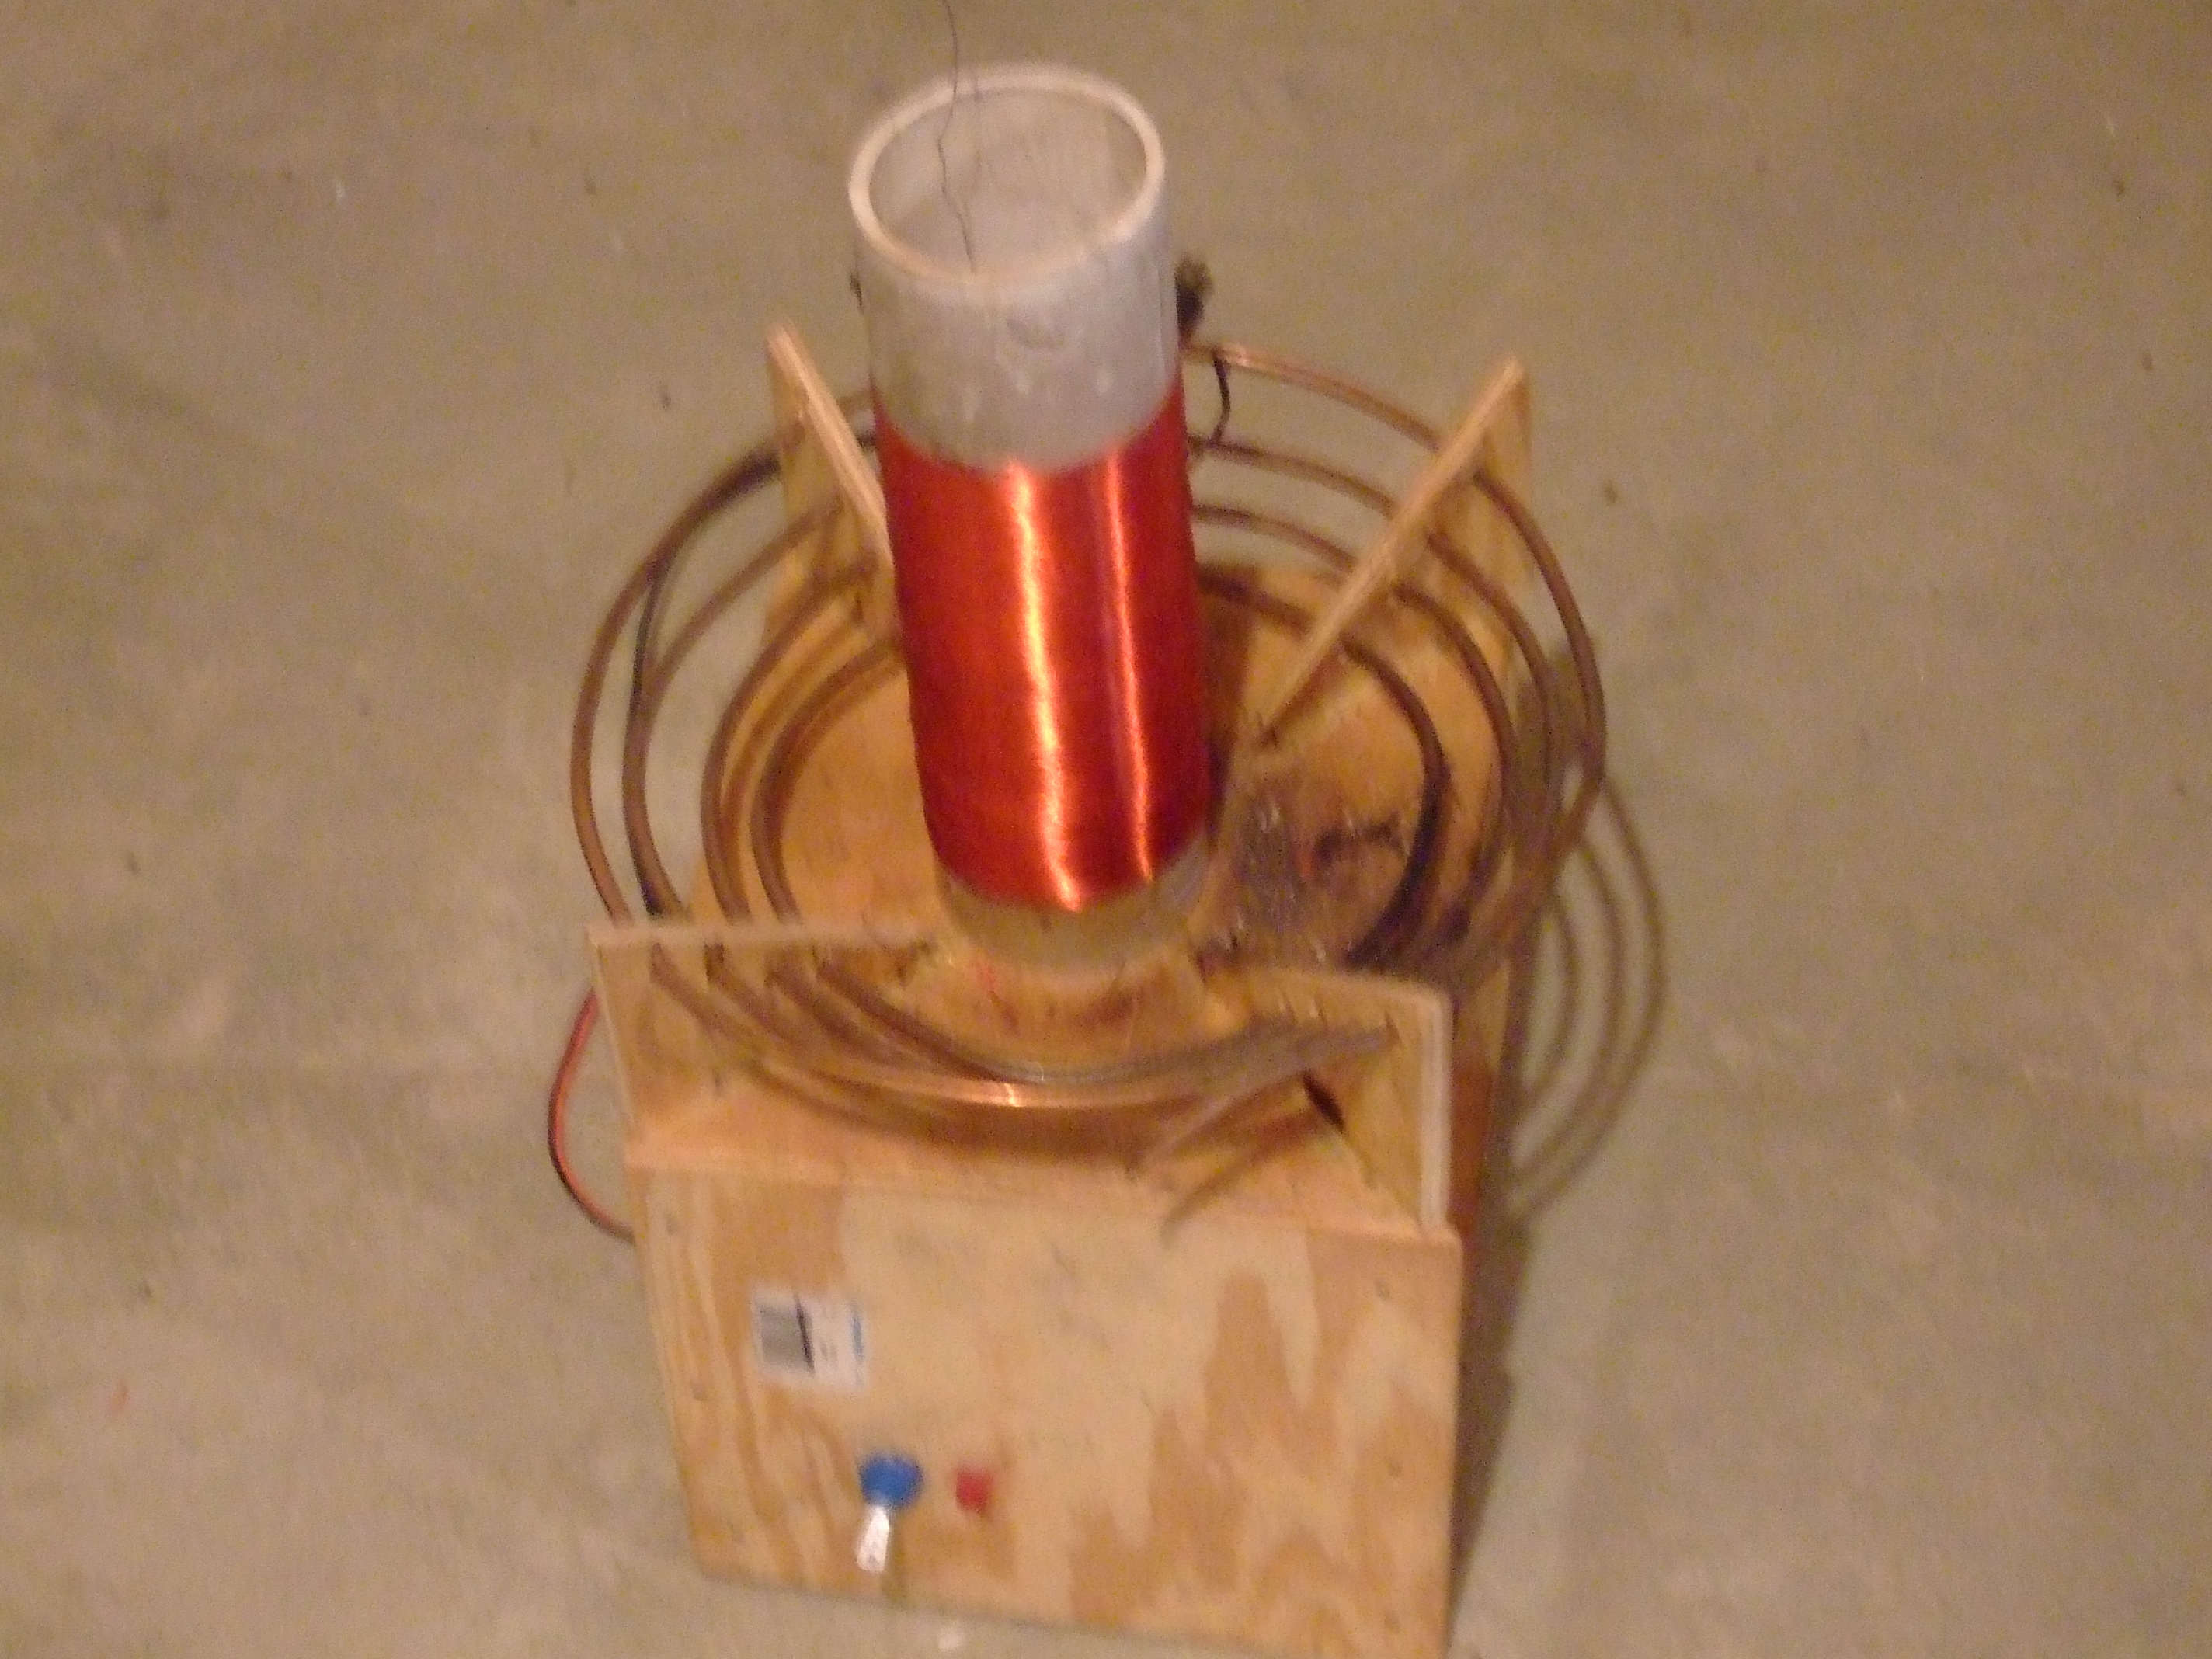 Step By Step Plans to Building a 250,000 Volt Tesla Coil. (REVISED VERSION)